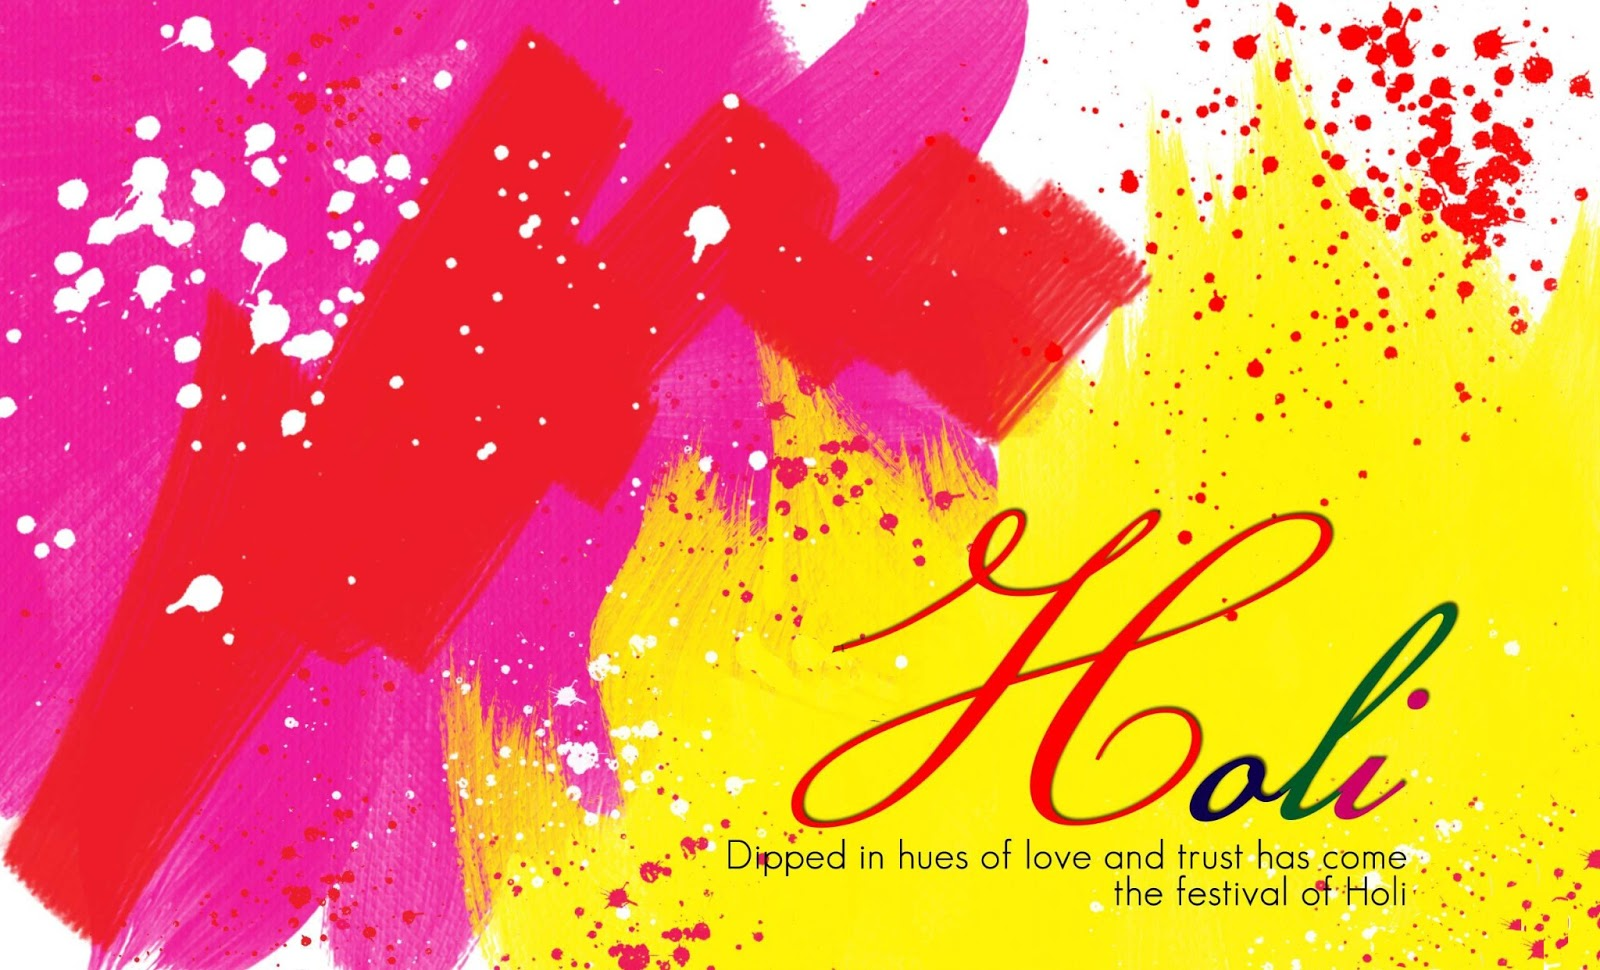 Joker Quotes 4k Wallpaper Hdmou Top 31 Most Beautiful Holi Wallpapers In Hd